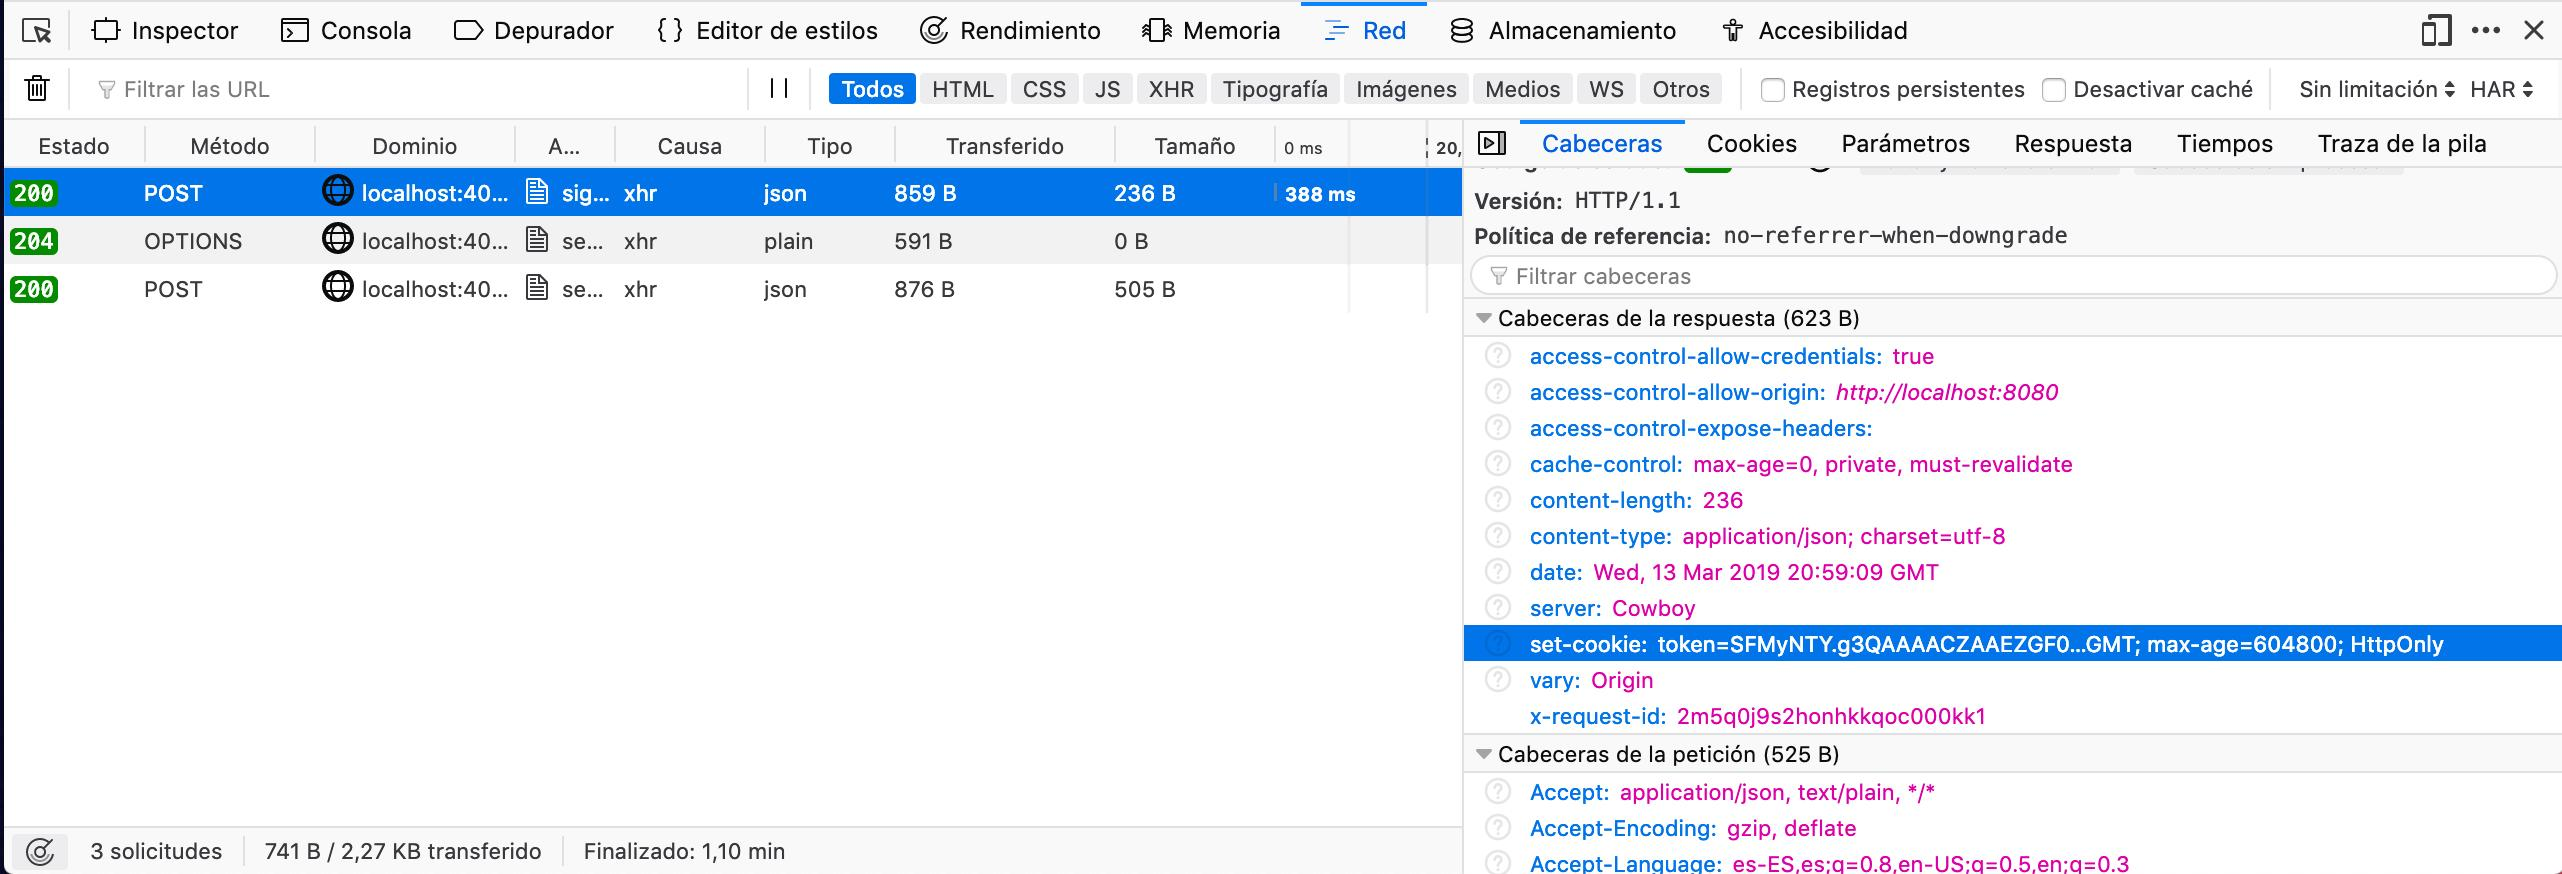 Set-cookie header works on Google Chrome and FF but no